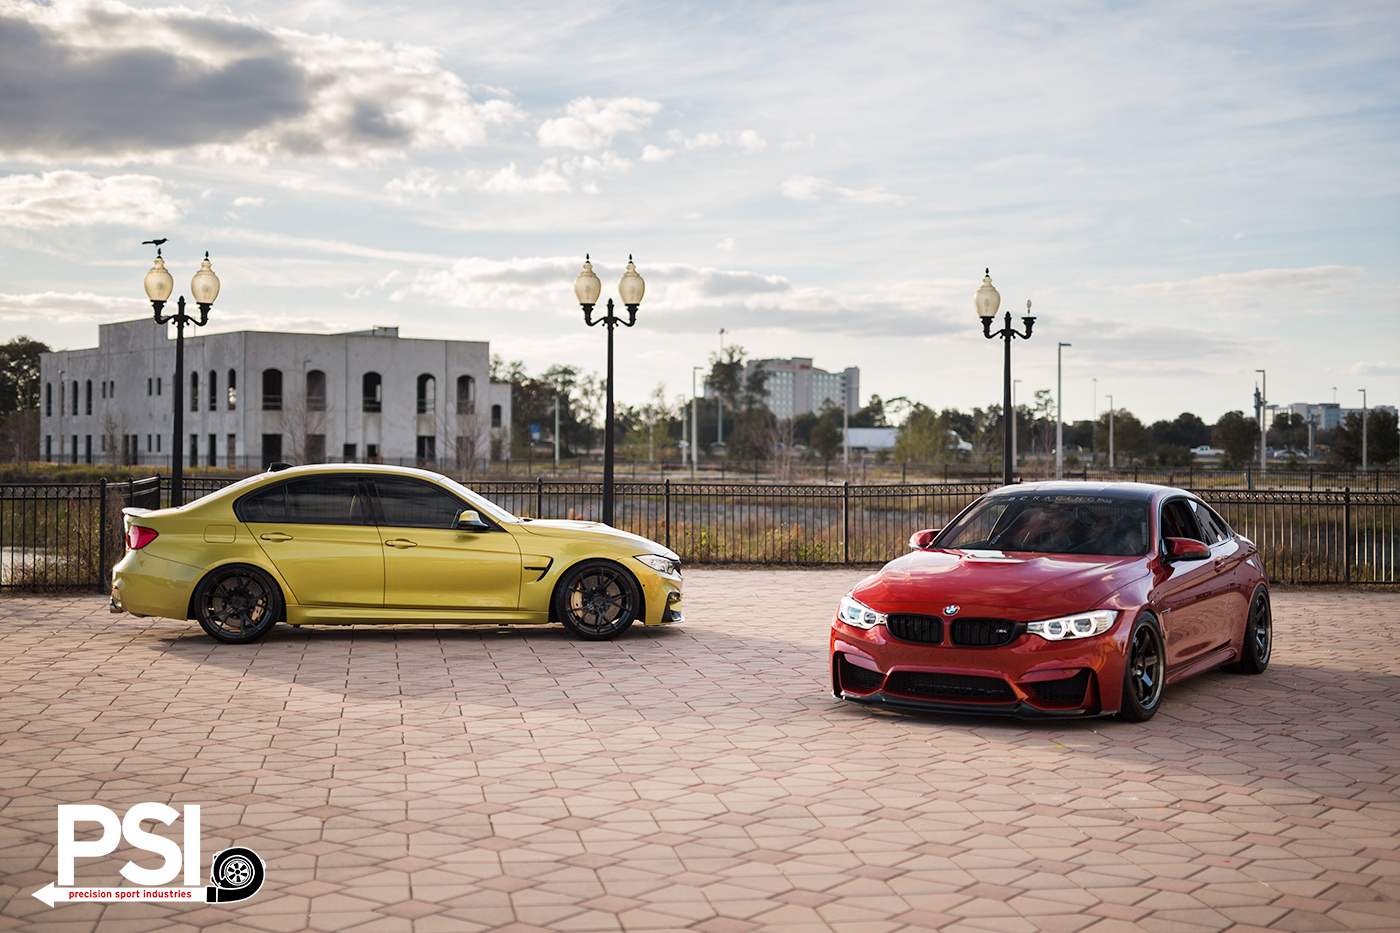 Duel Pursuits Bmw M3 Versus Bmw M4 By Psi